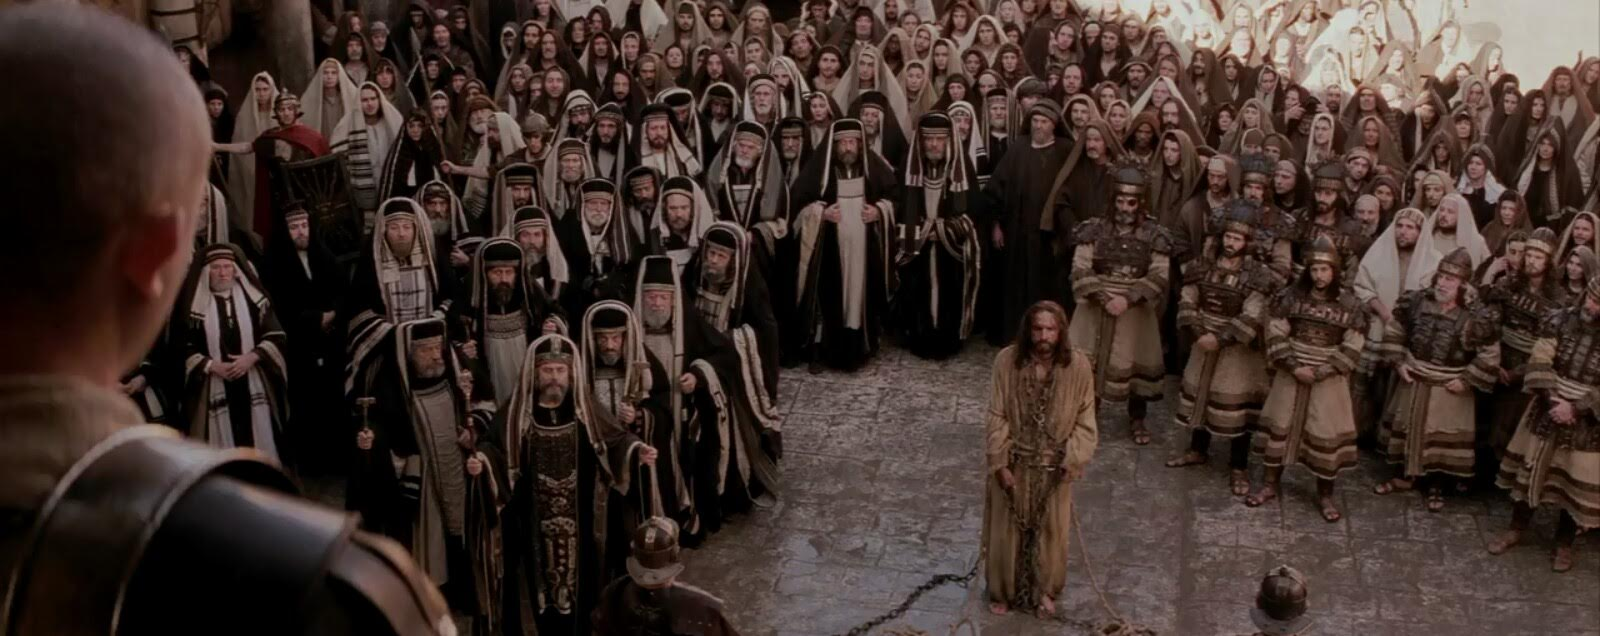 The Passion of the Christ – Movie Reviews Simbasible